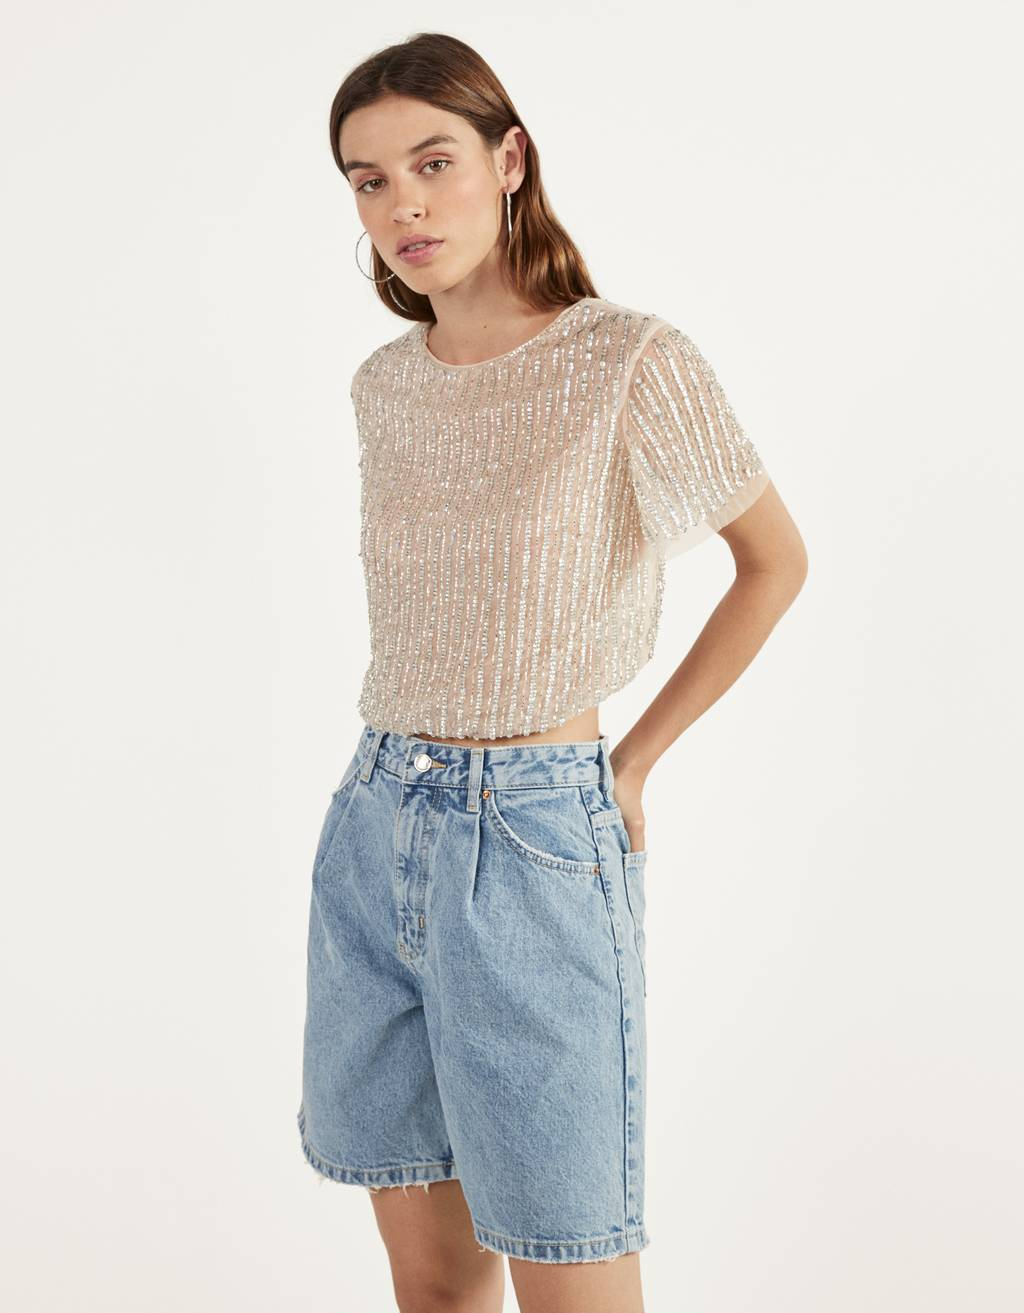 Sheer beaded T-shirt